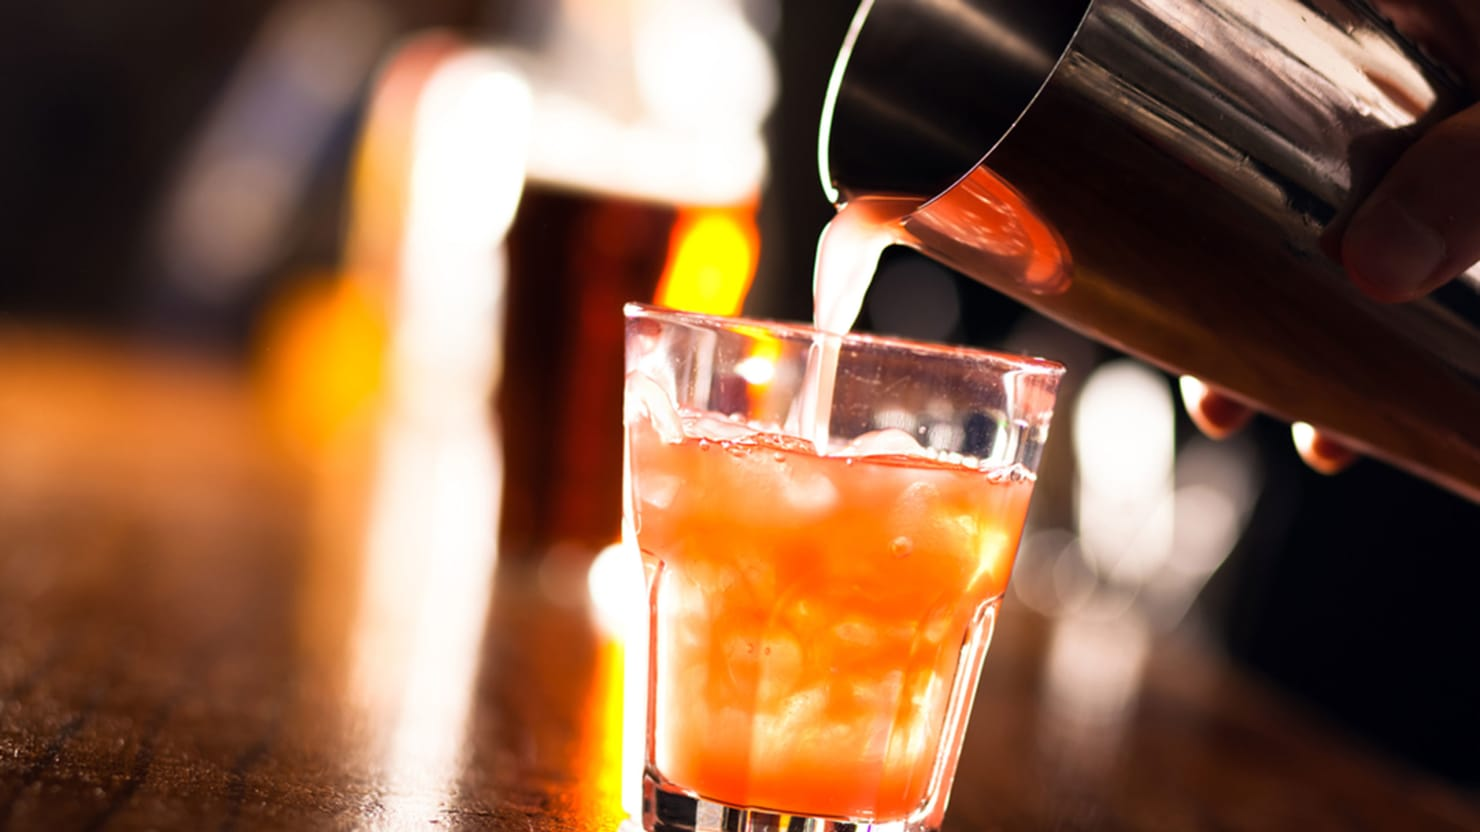 How Bad Is Booze, Really? 6 Crazy Facts About Drinking Alcohol